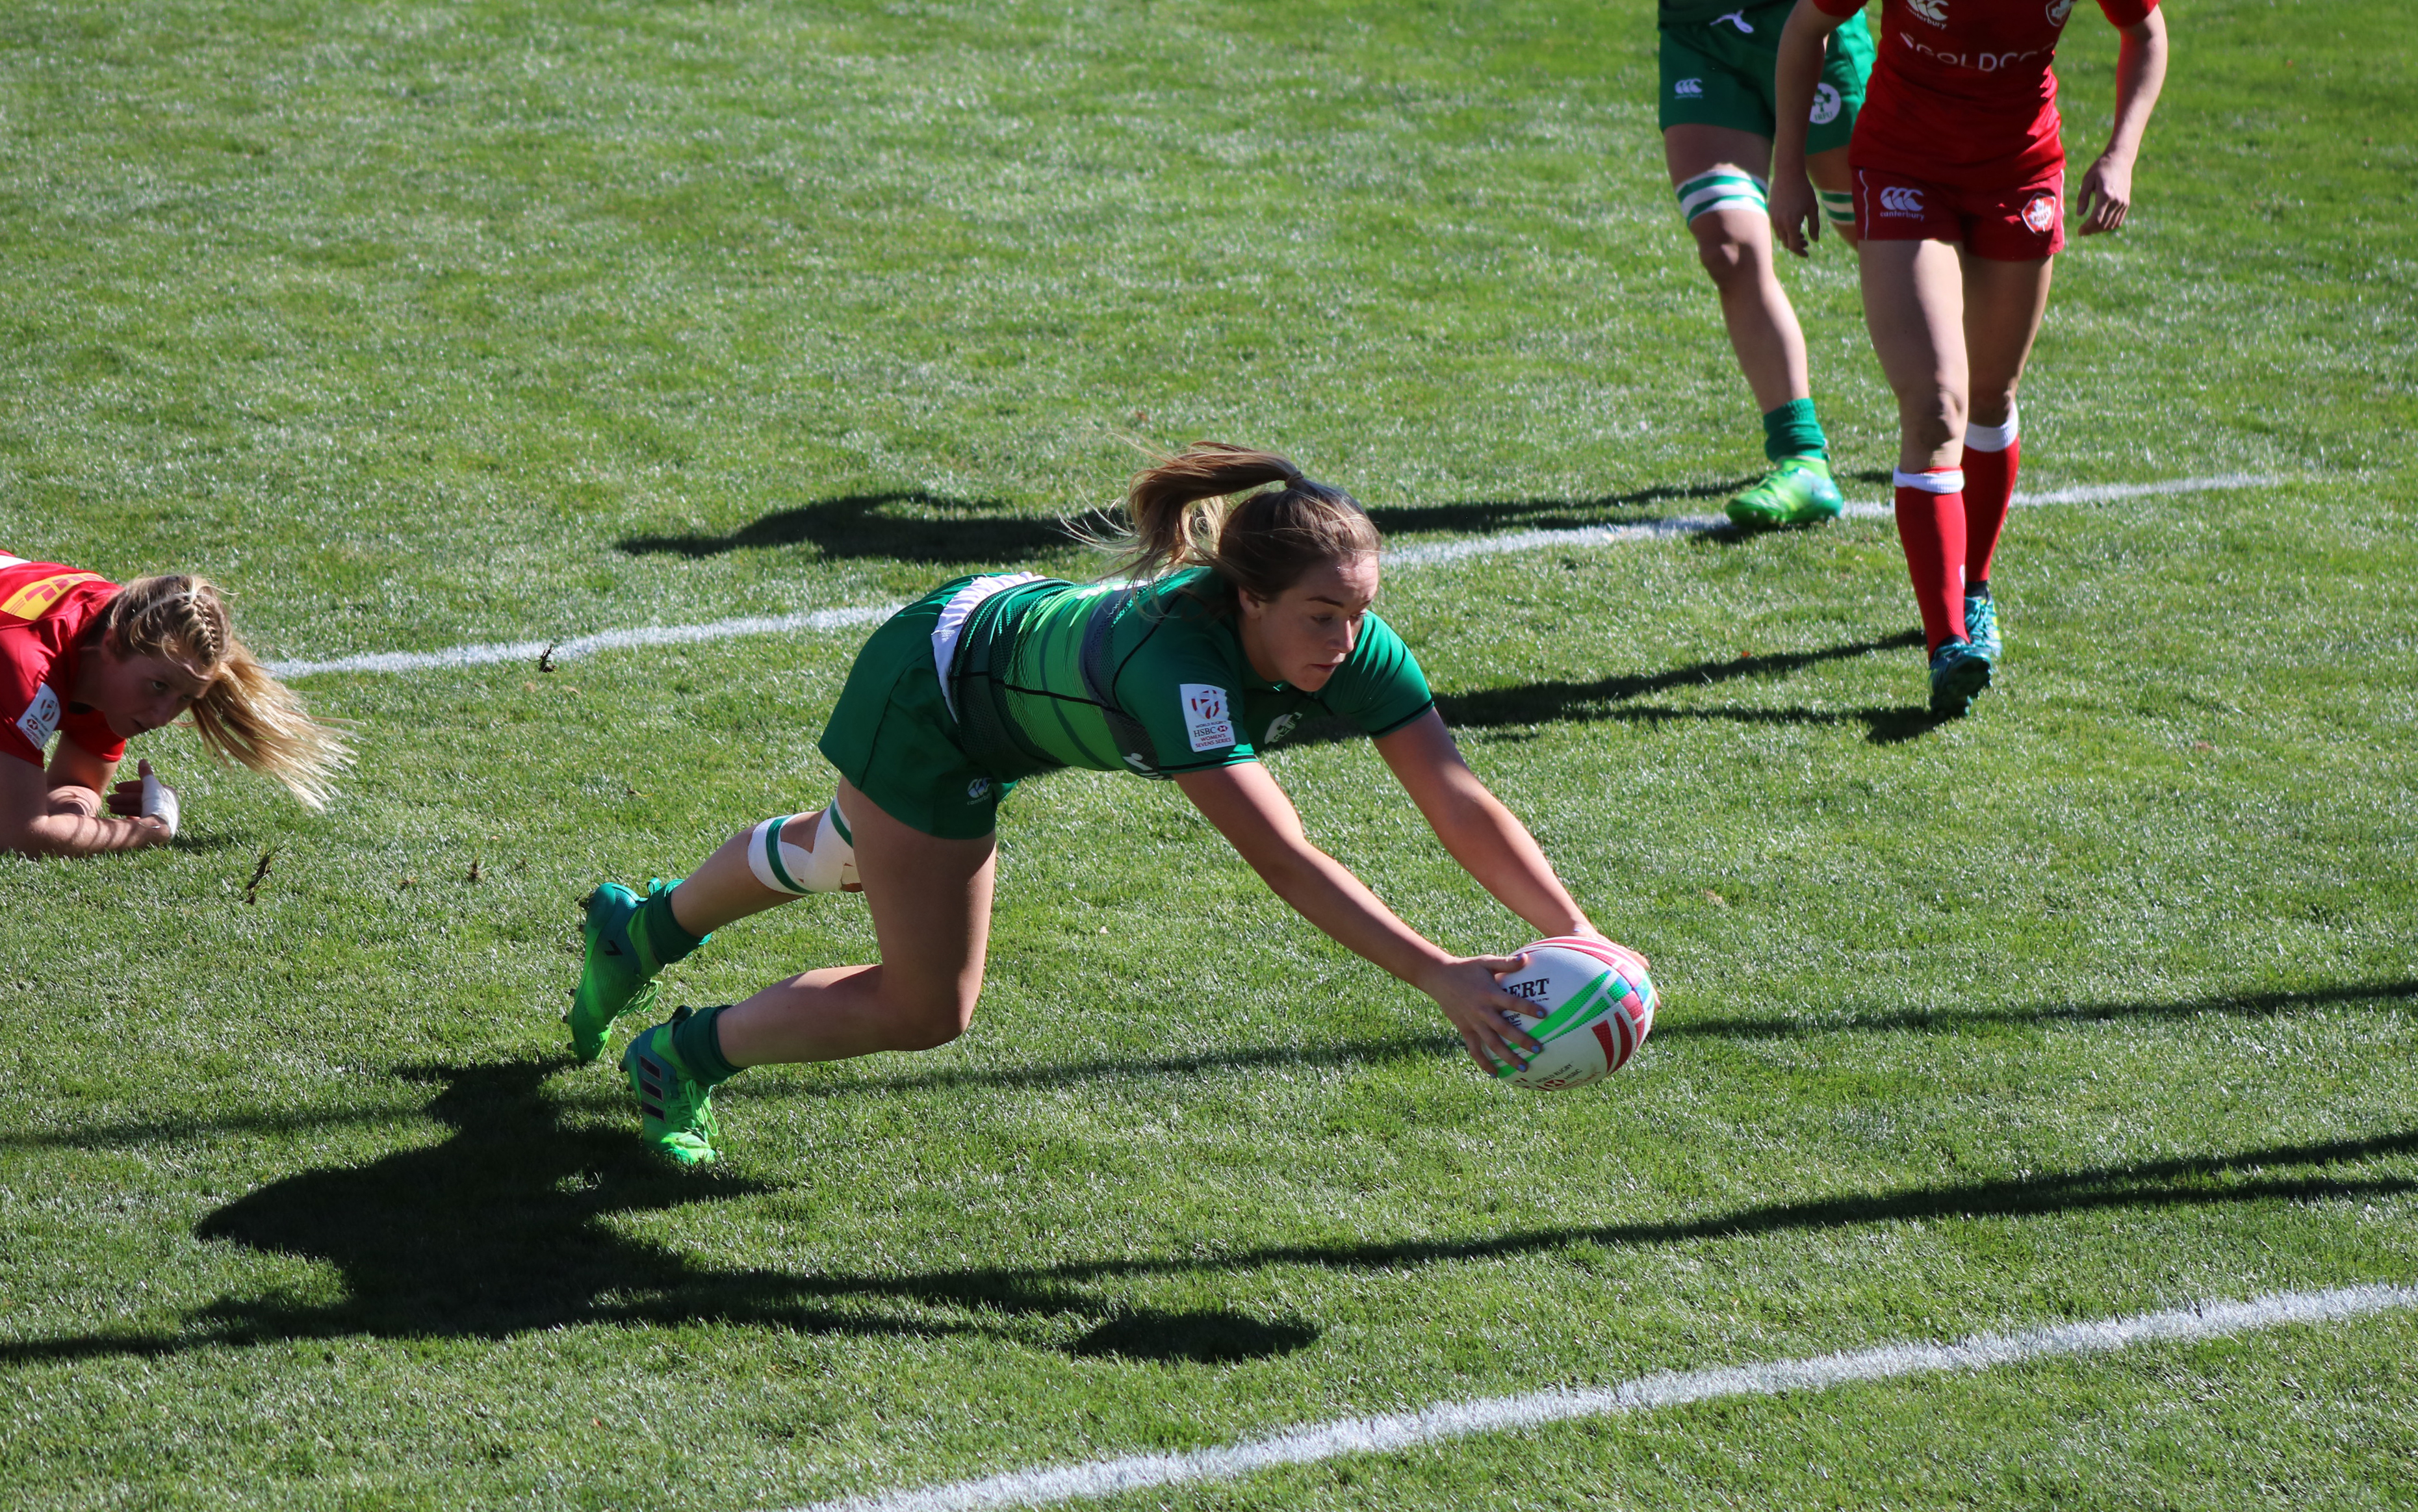 Leinster Rugby | Ireland Women's 7s squad announced for Biarritz 7s